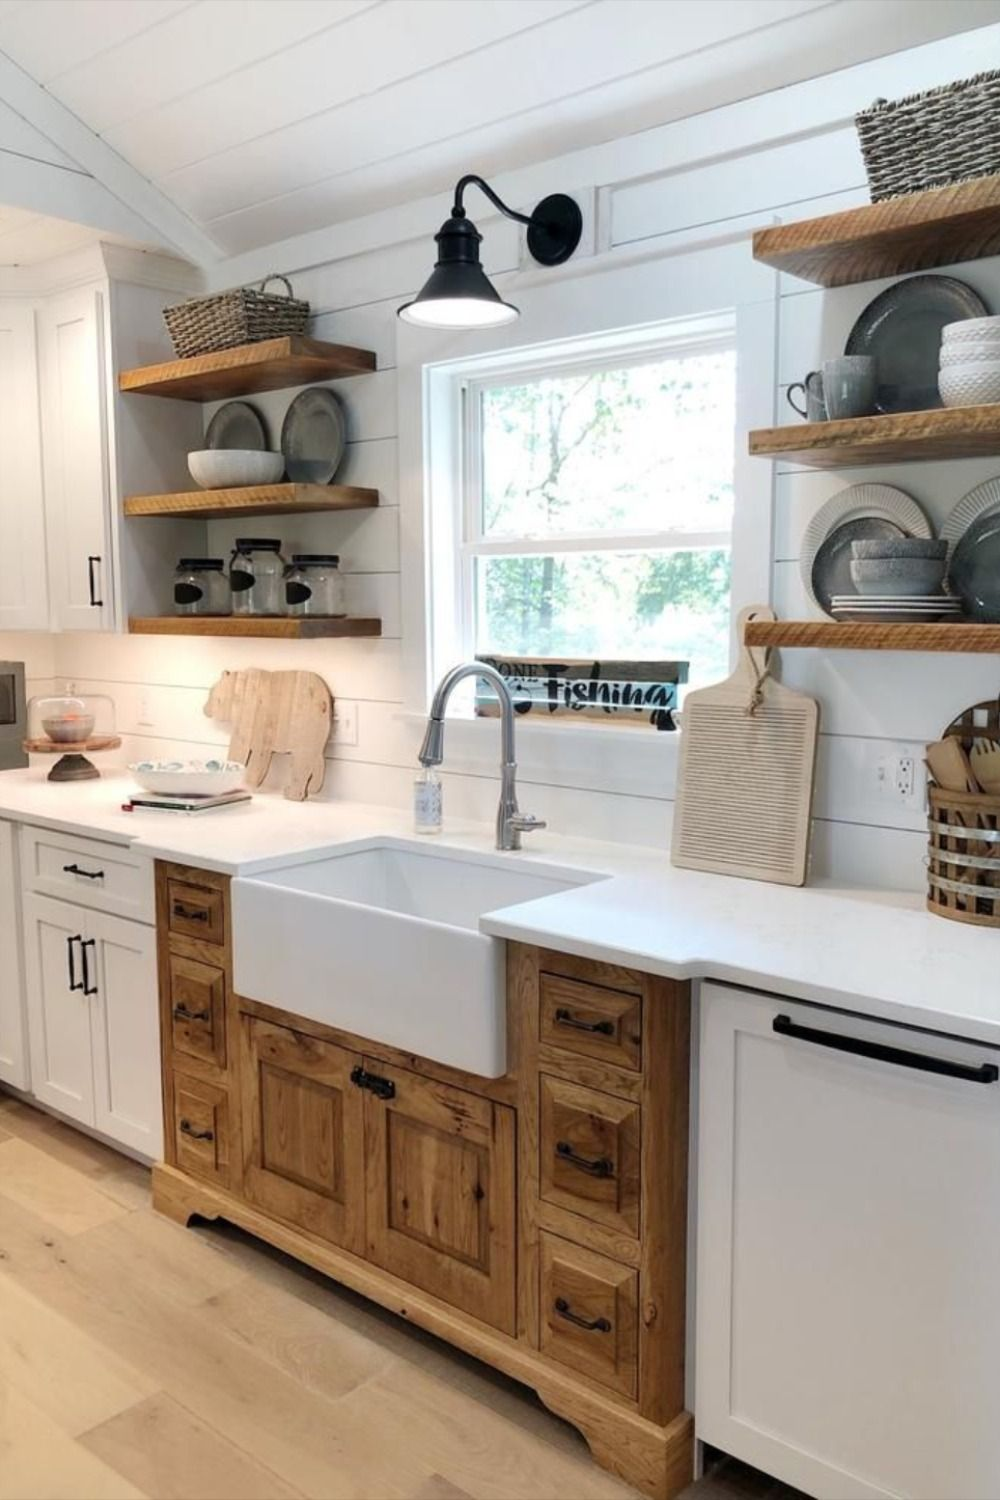 50+ Beautiful Galley Kitchen Remodel Ideas 2021 ( Tips & Trends) -